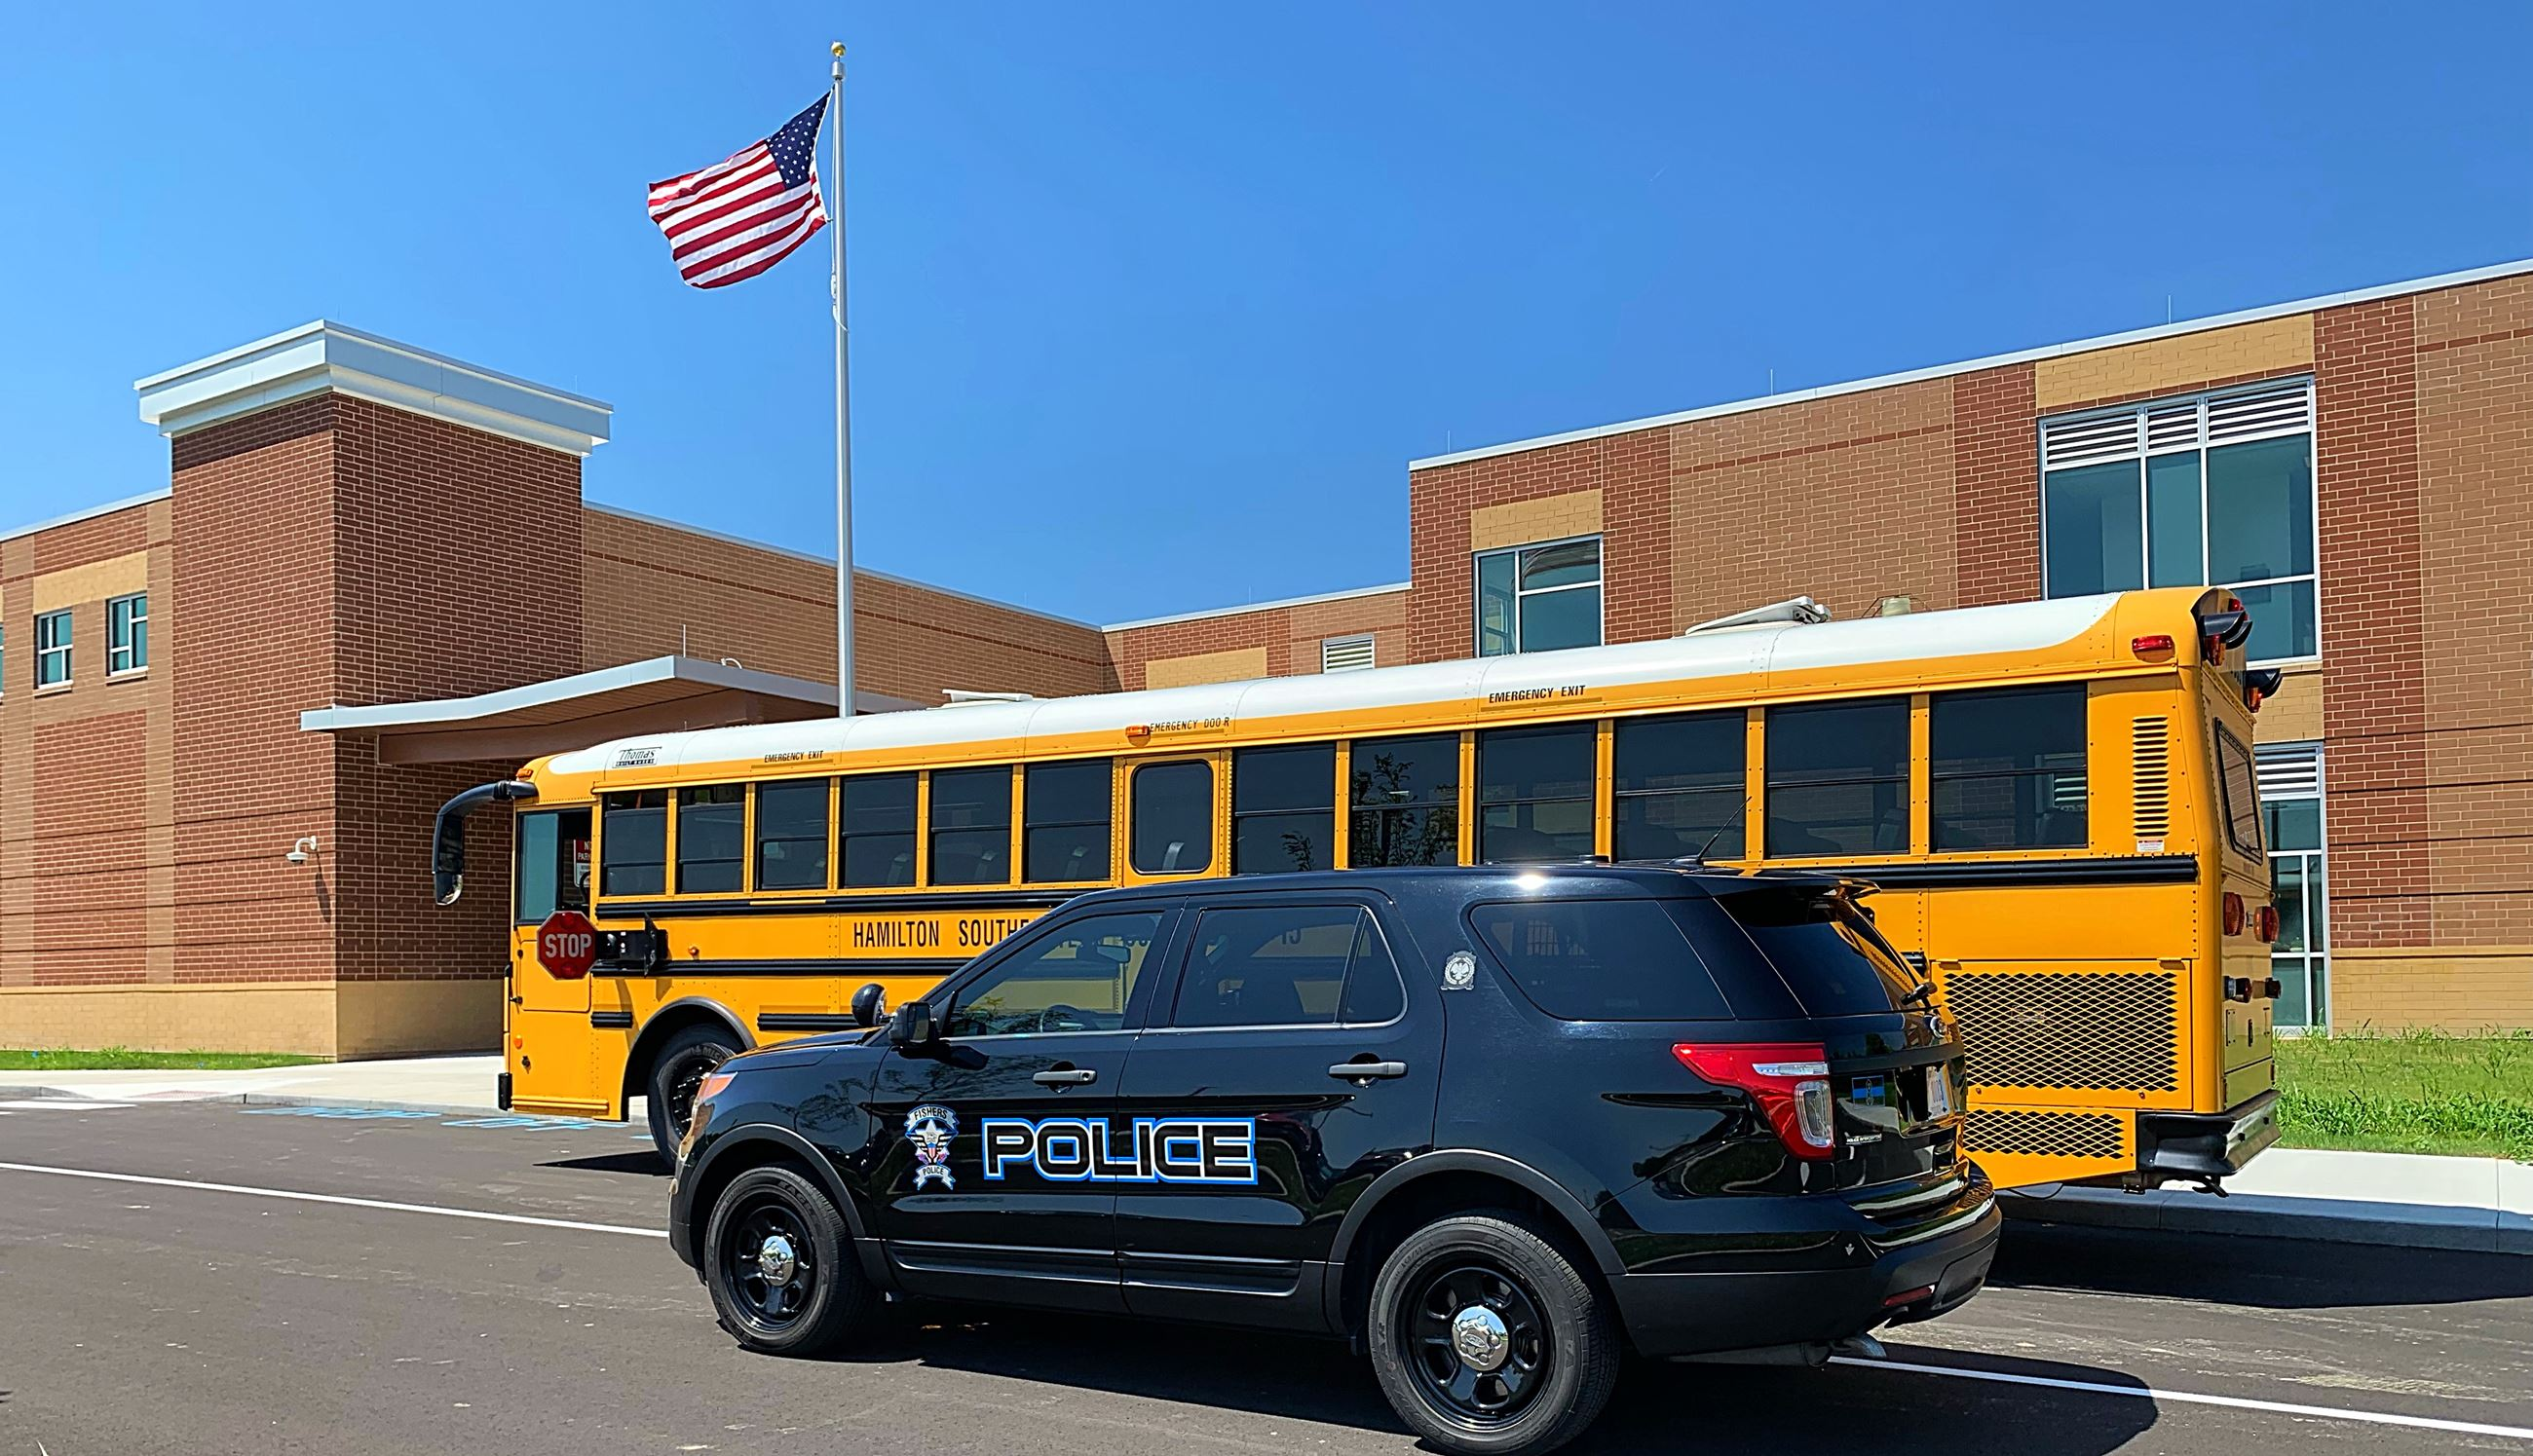 08-05-2019 School Bus and Police SUV